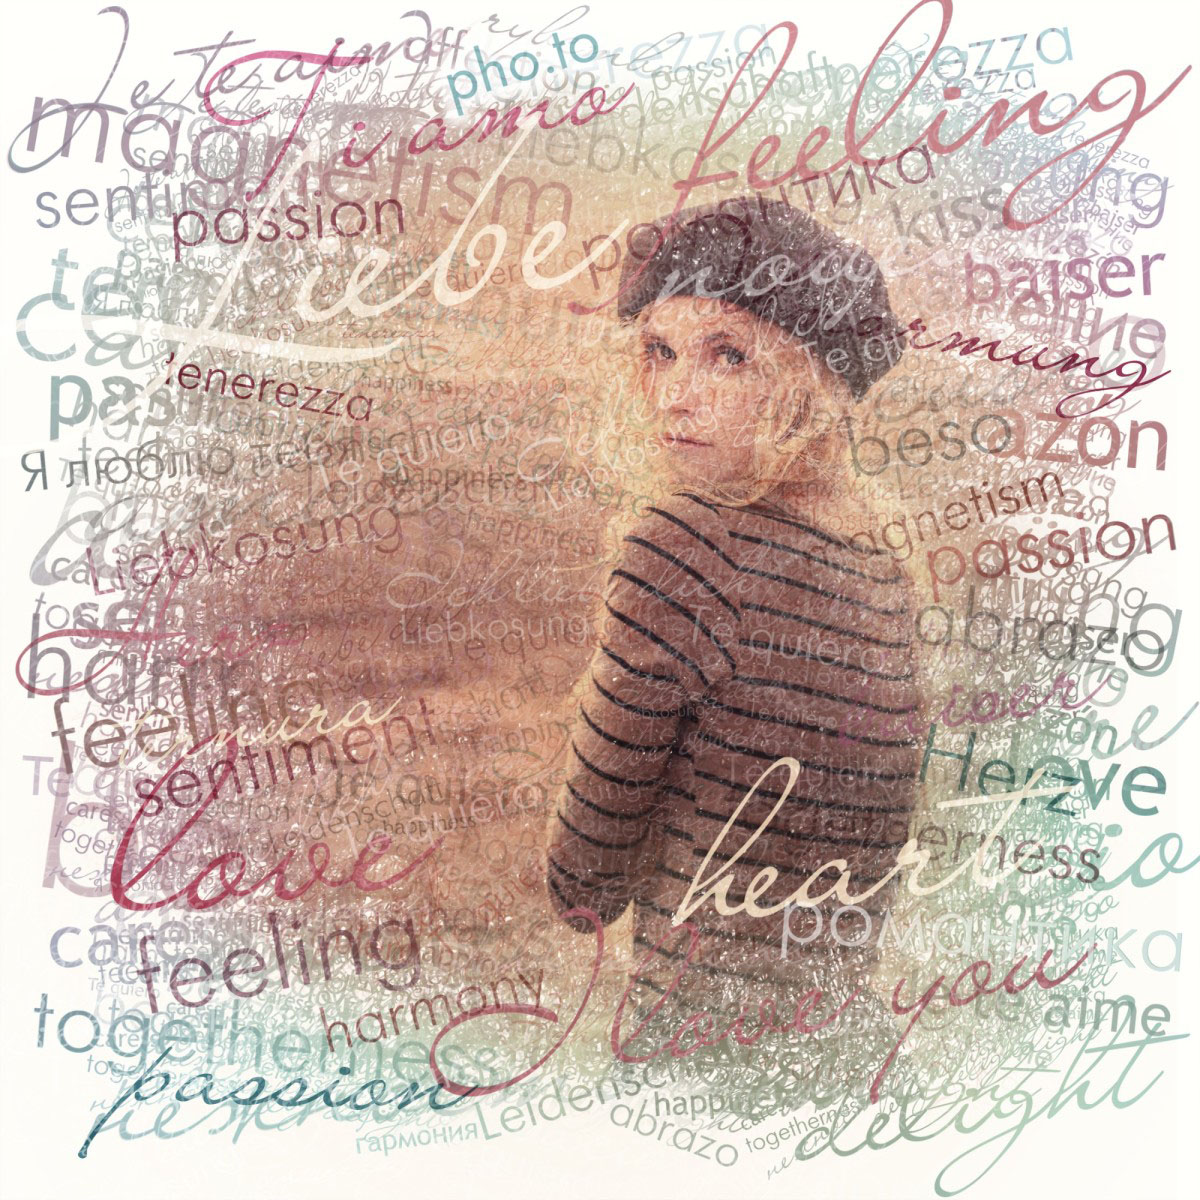 Cover your photo with romantic words of love written in different languages